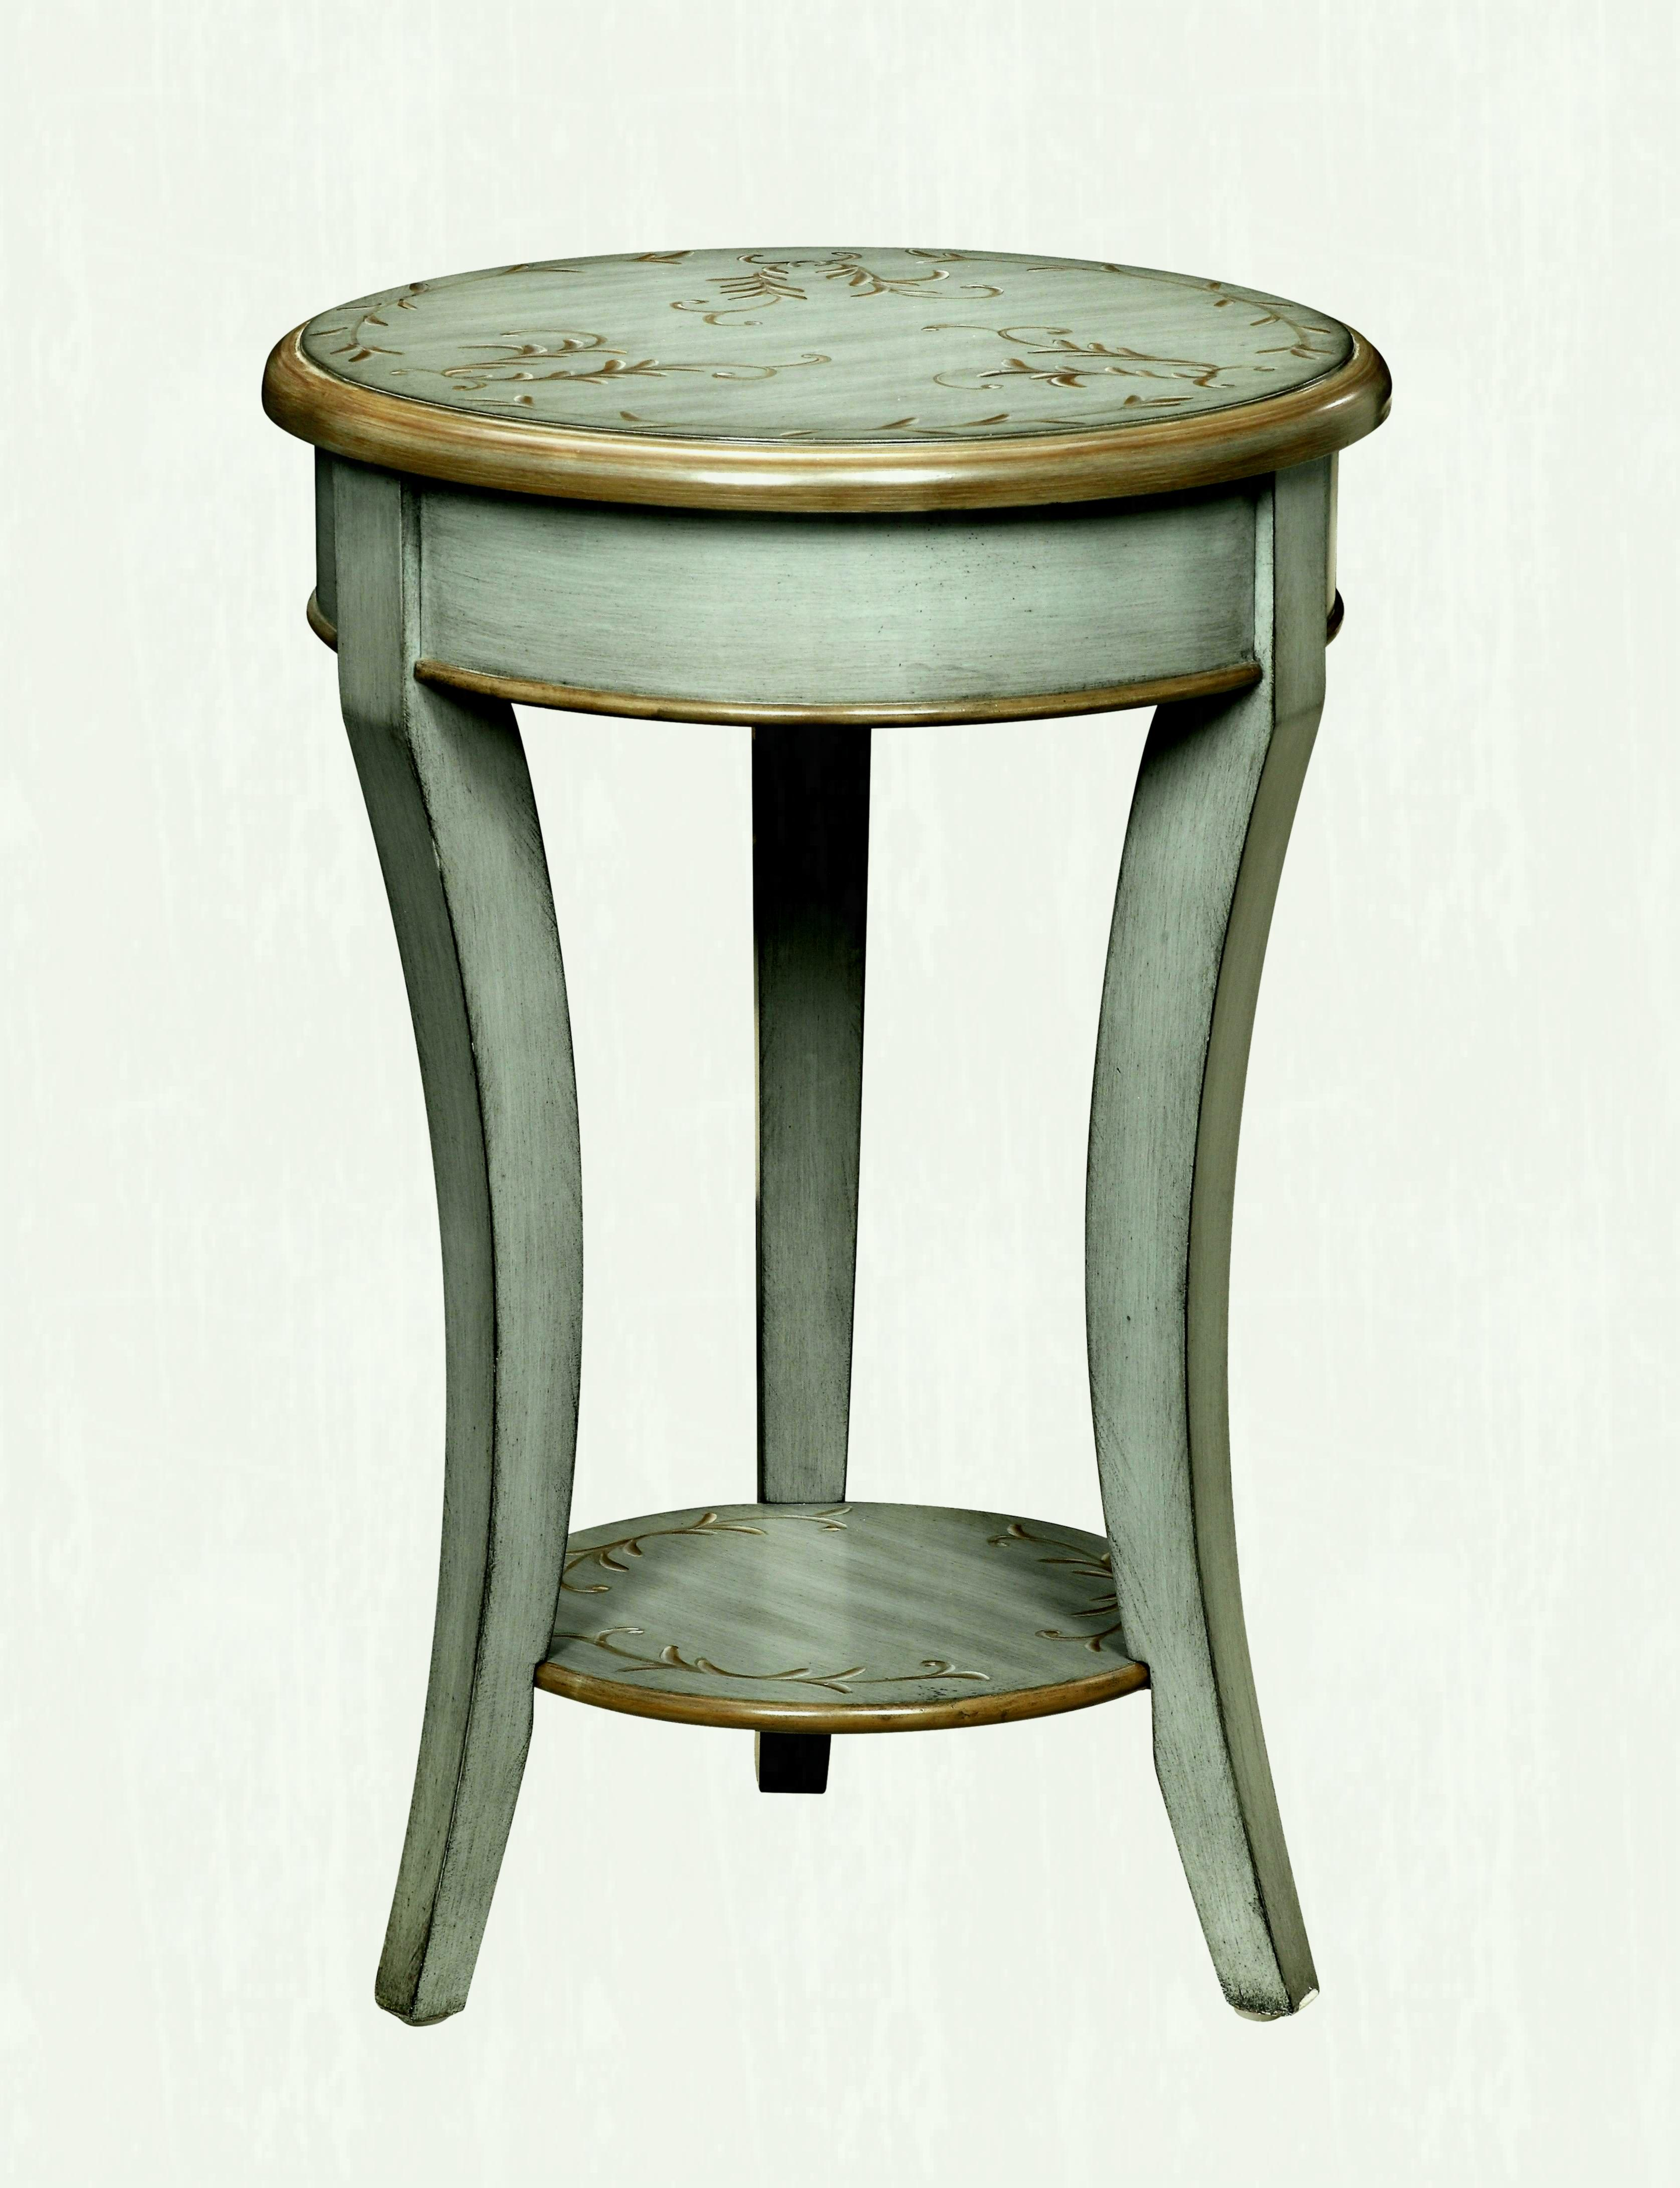 small round accent table for the bedroom lovely wood tablecloth stands inch deep console distressed tall with storage antique wedge side blue ceramic stool pottery barn rustic